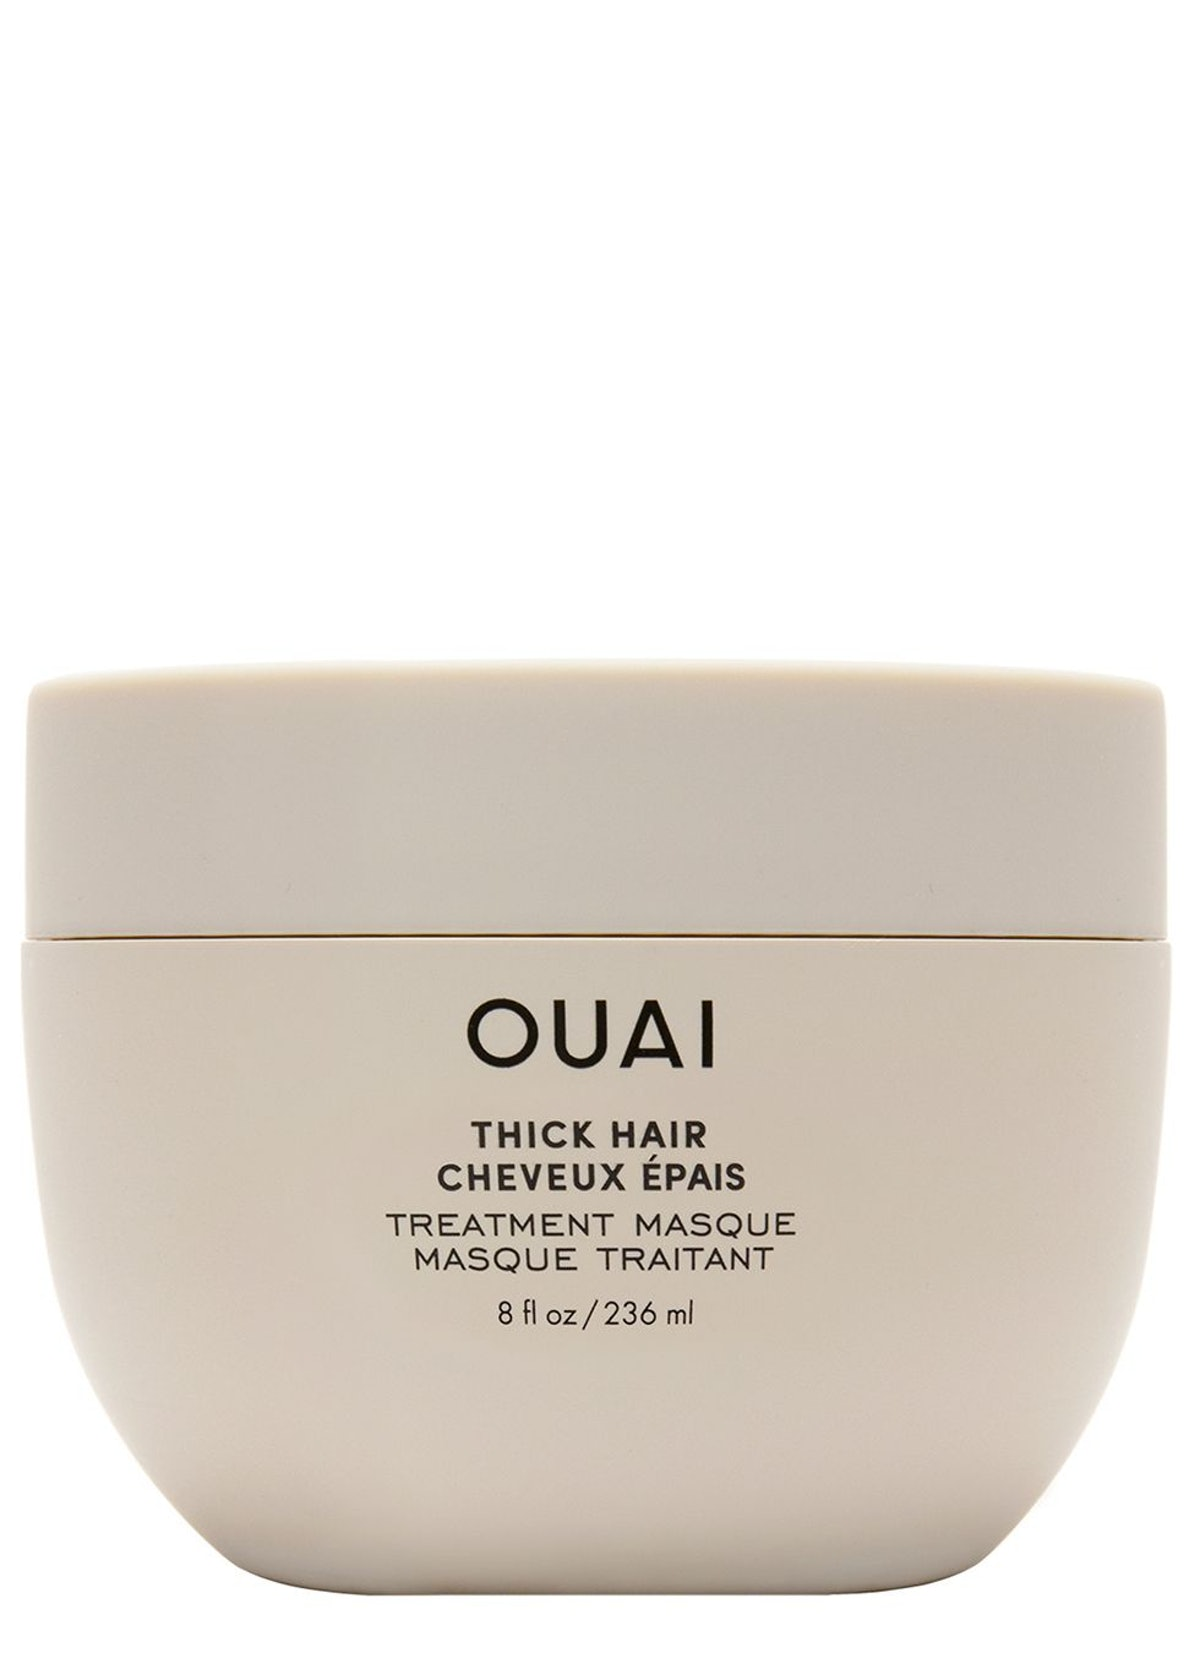 Thick Hair Treatment Masque 236ml: additional image